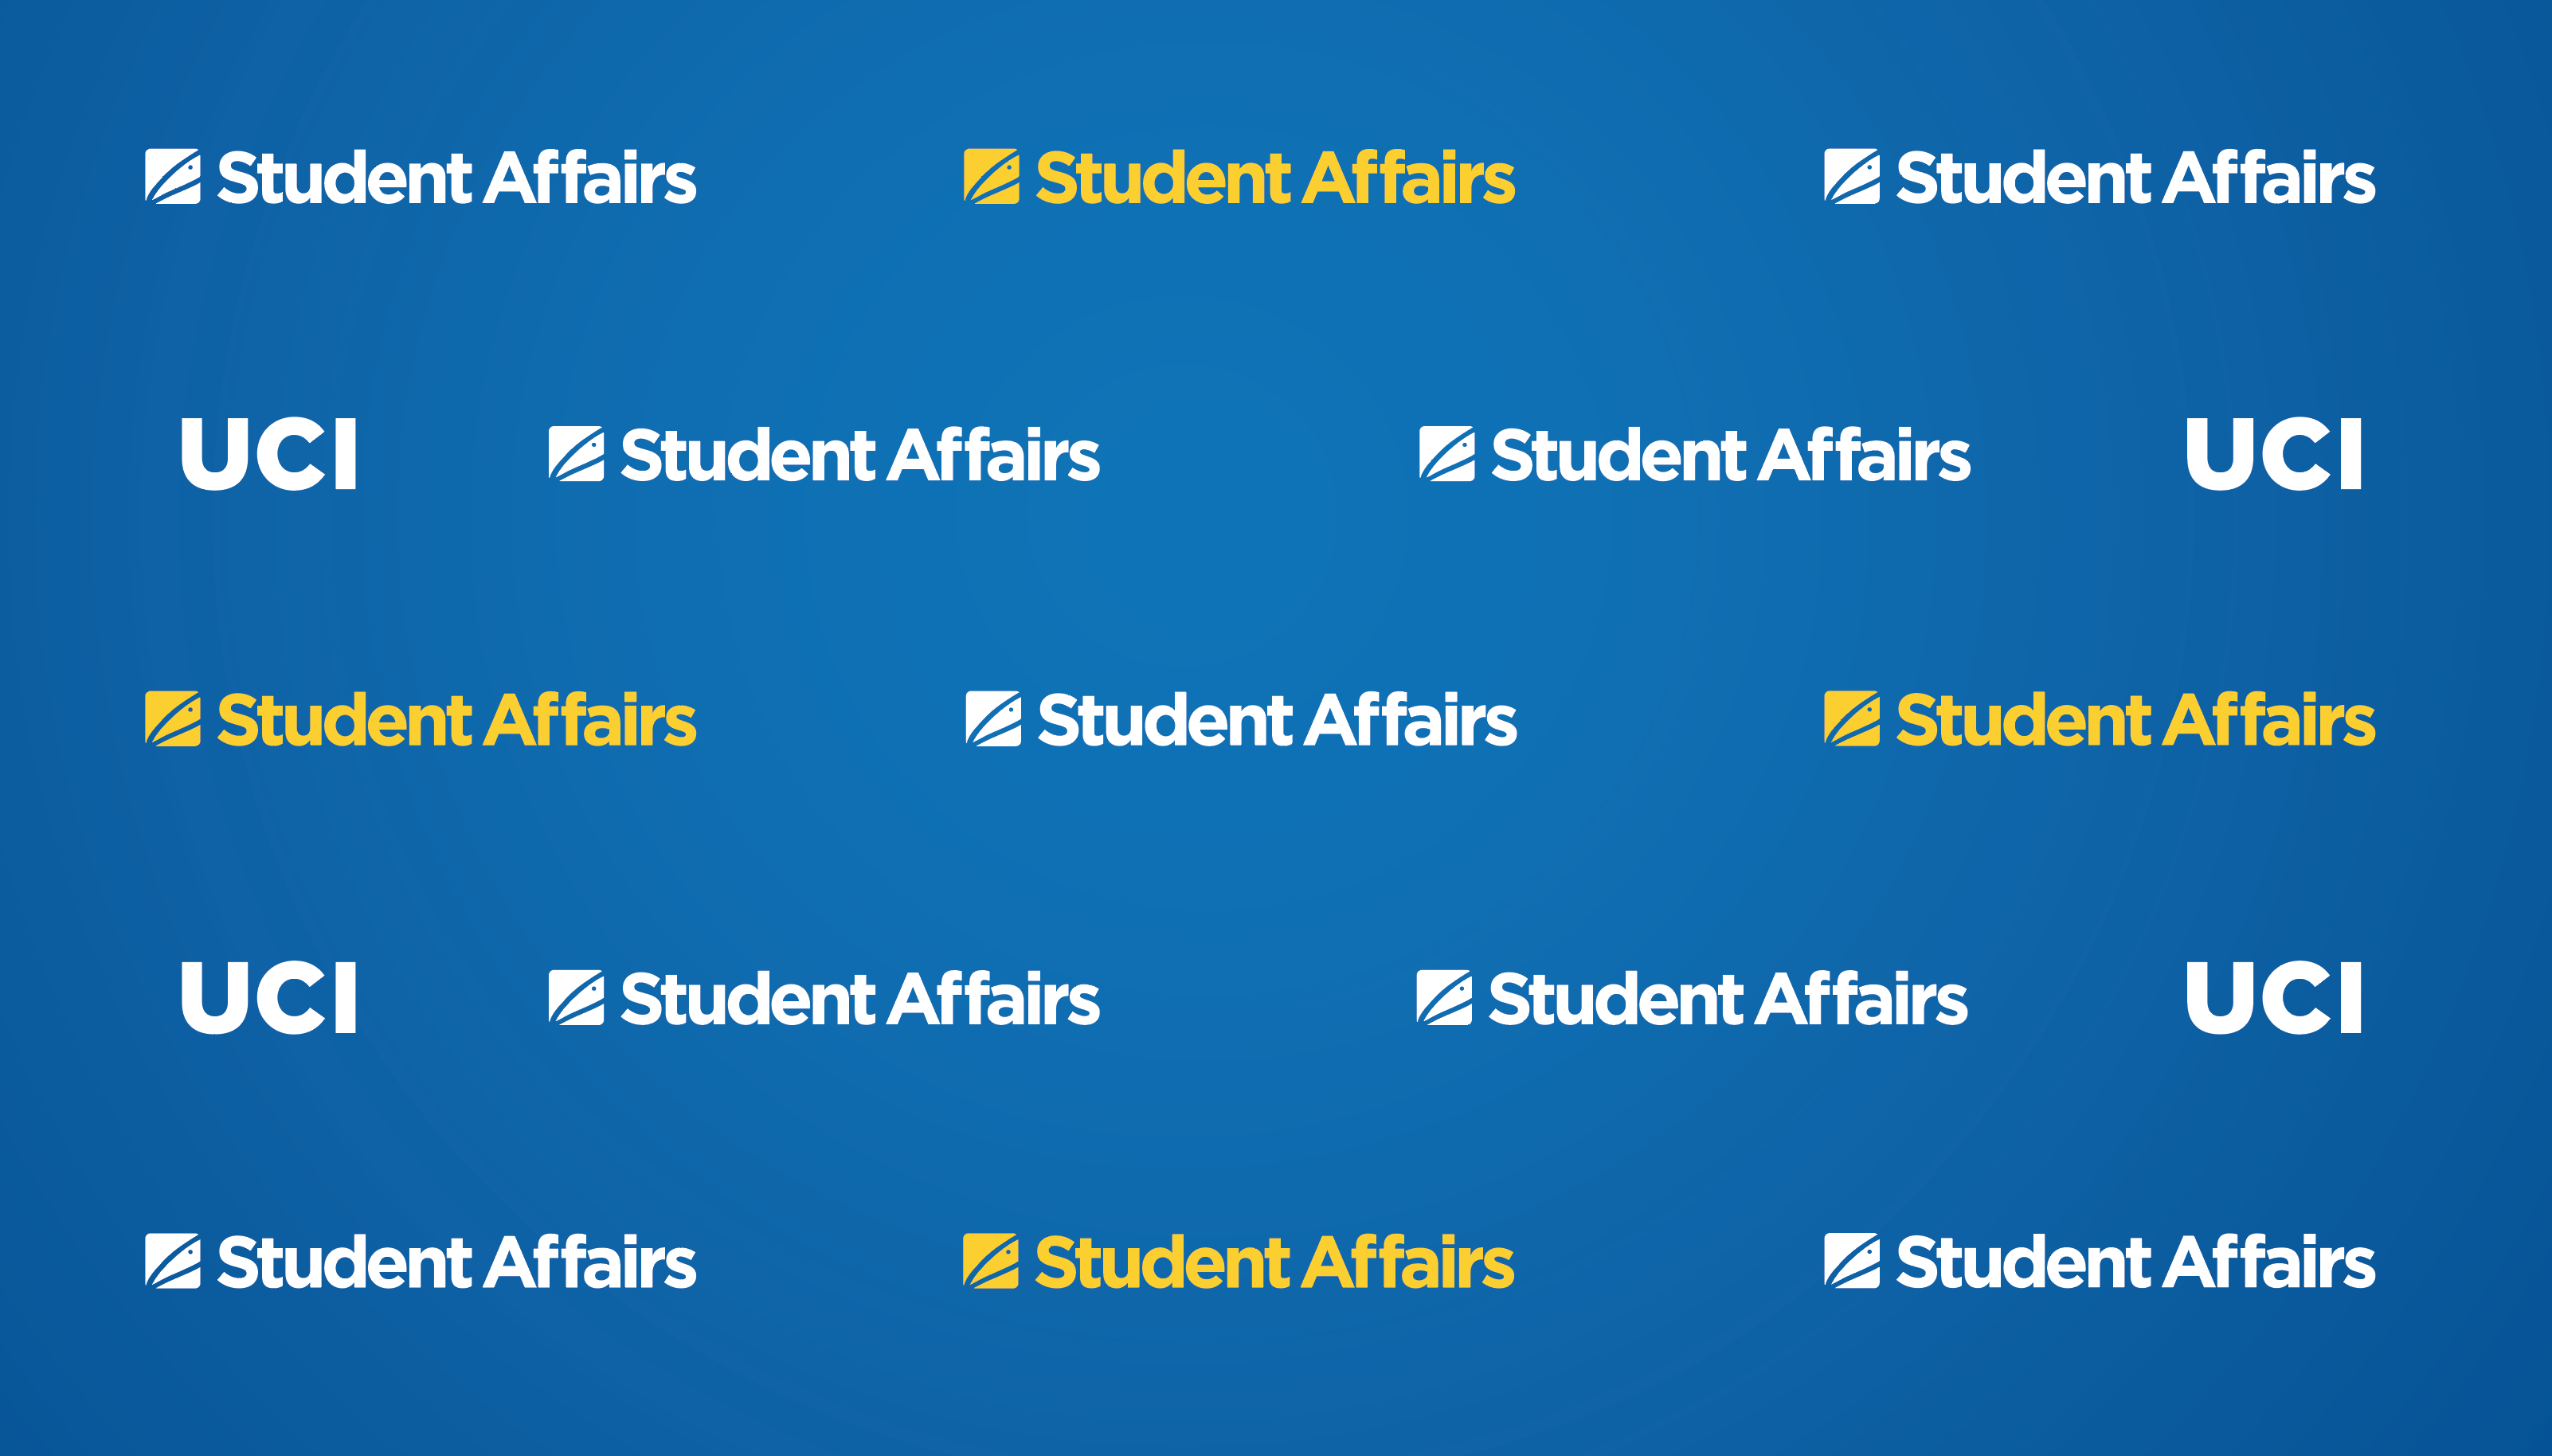 Blue background with white UCI logos and white and yellow Student Affairs graphics in a repeating pattern across the screen